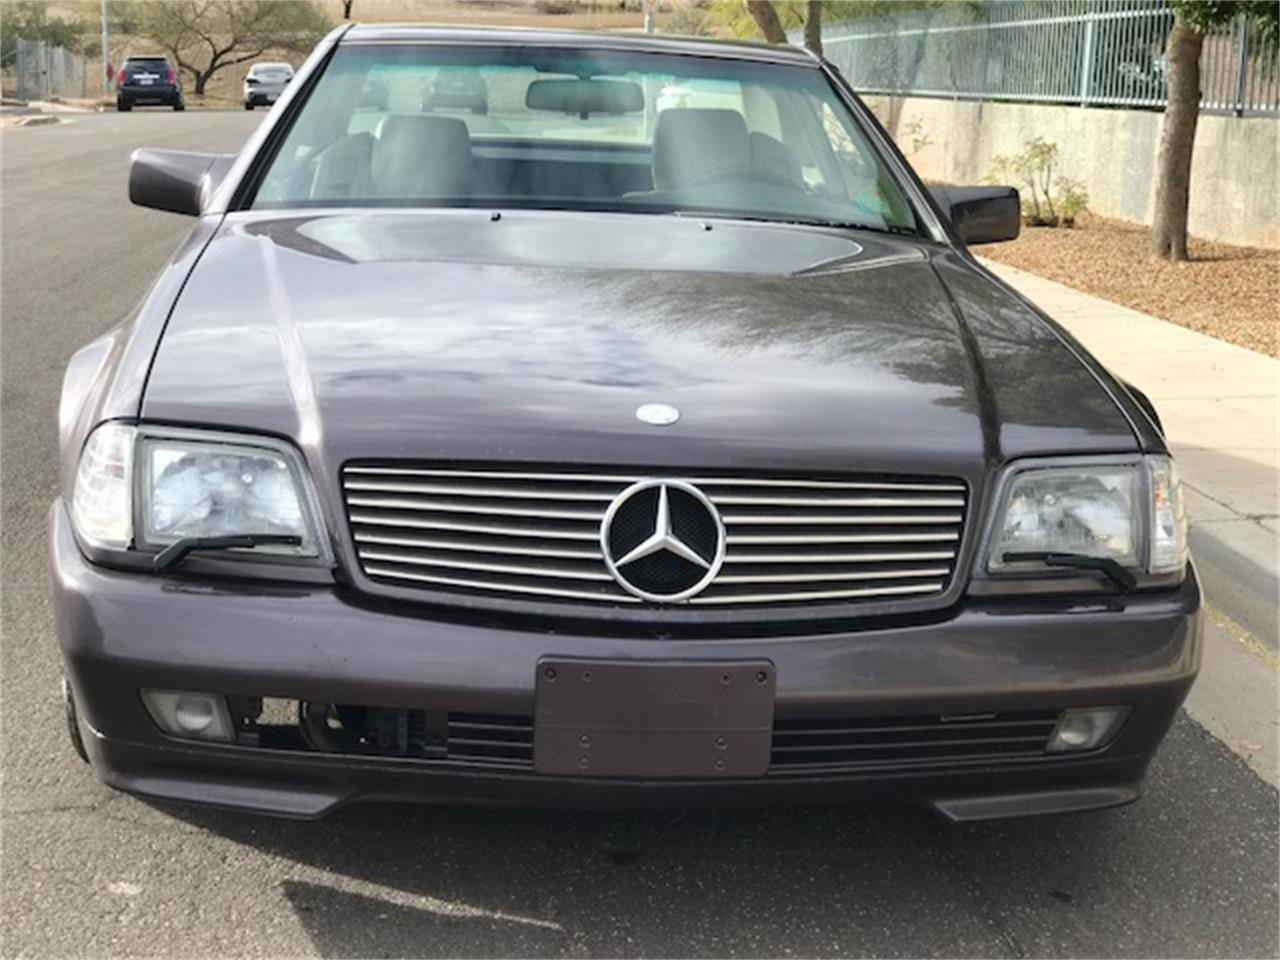 Large Picture of '92 Mercedes-Benz SL500 located in Arizona Auction Vehicle Offered by Russo and Steele - MOE6